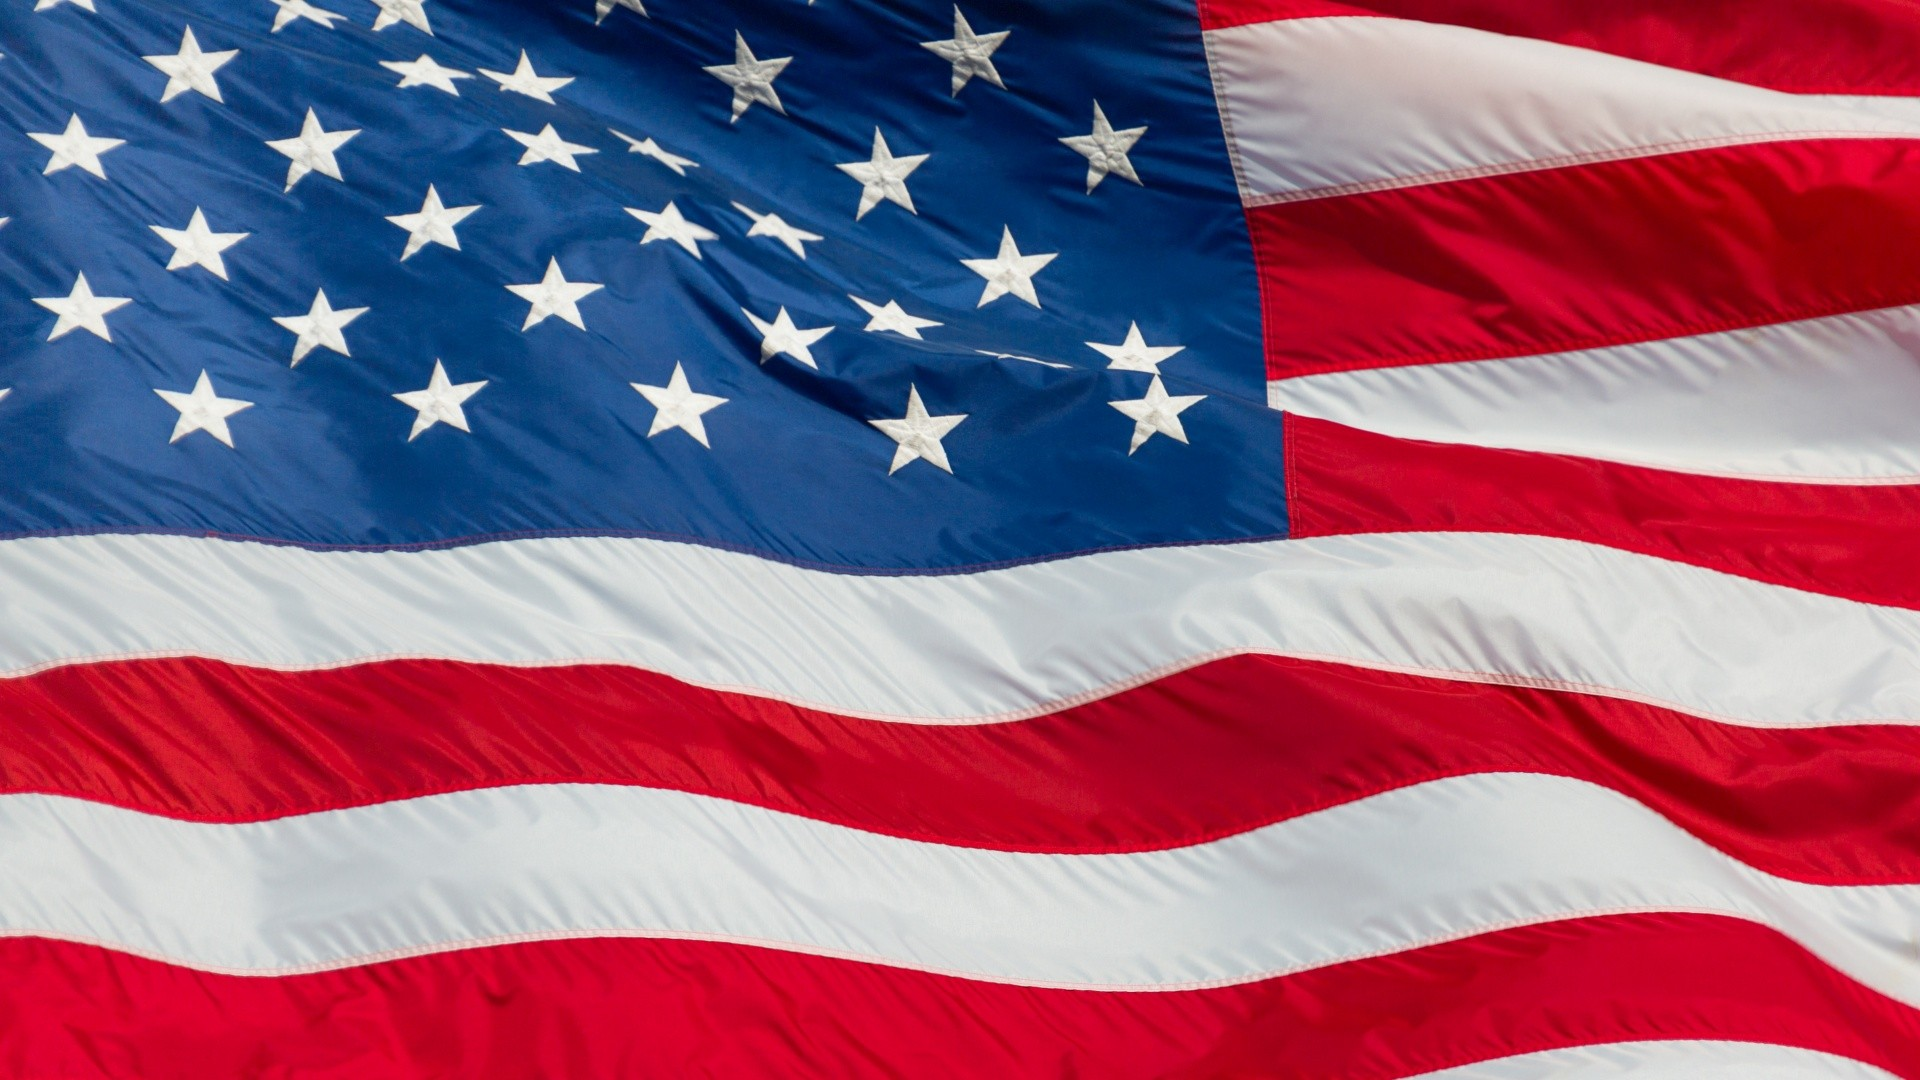 American background download free amazing hd - American flag hd ...